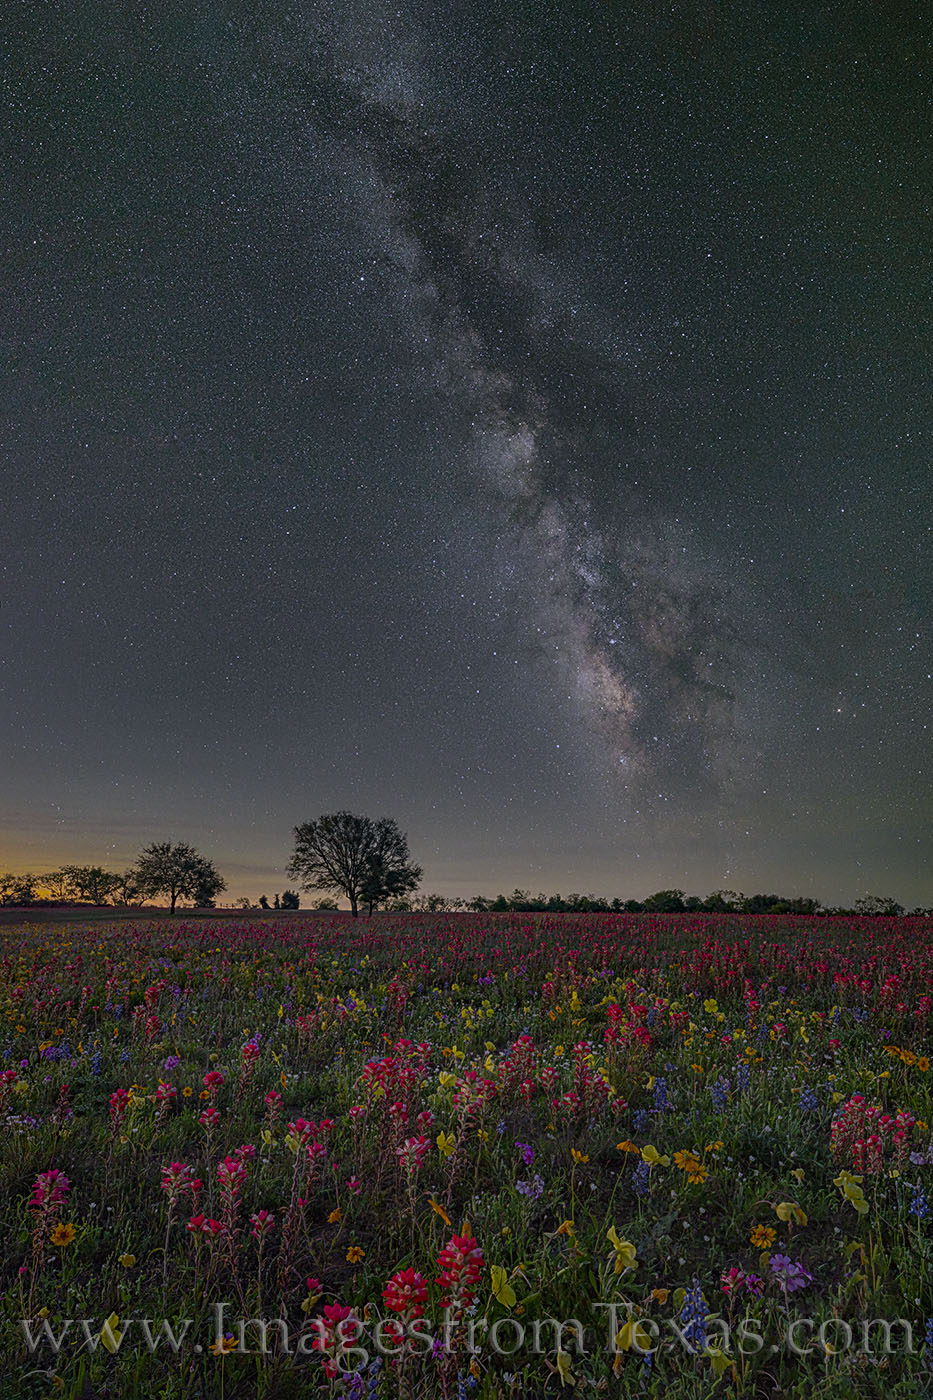 Milky way, wildflowers, rural, bluebonnets, paintbrush, primrose, phlox, stars, night sky, new berlin, night, cold, april, spring